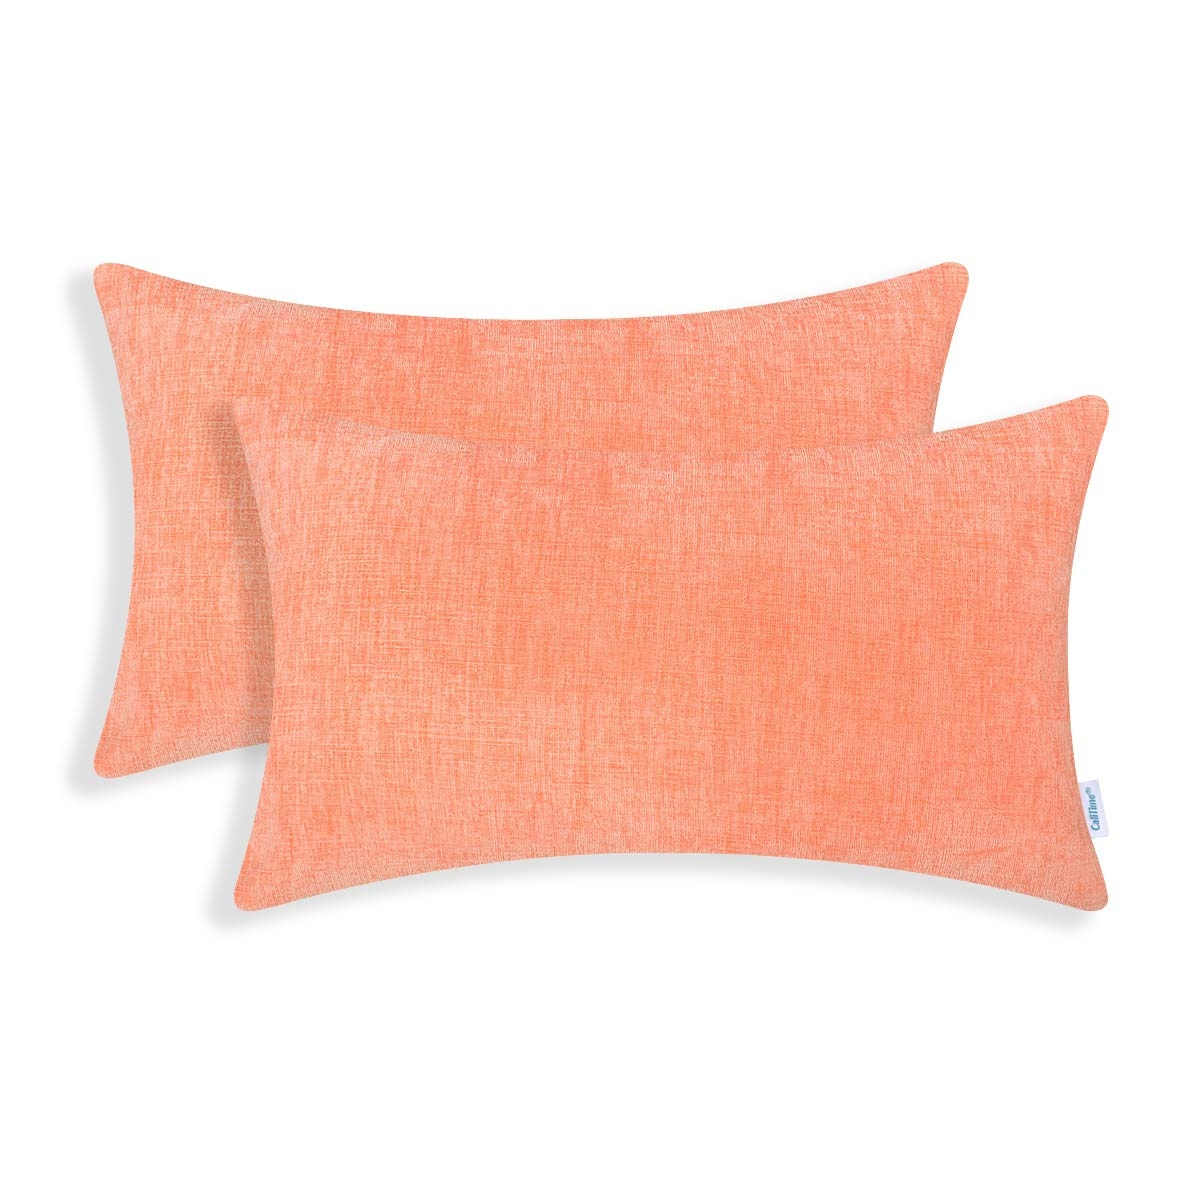 CaliTime Pack of 2 Cozy Bolster Pillow Covers Cases for Couch Sofa Home Decoration Solid Dyed Soft Chenille 12 X 20 Inches Cantaloupe